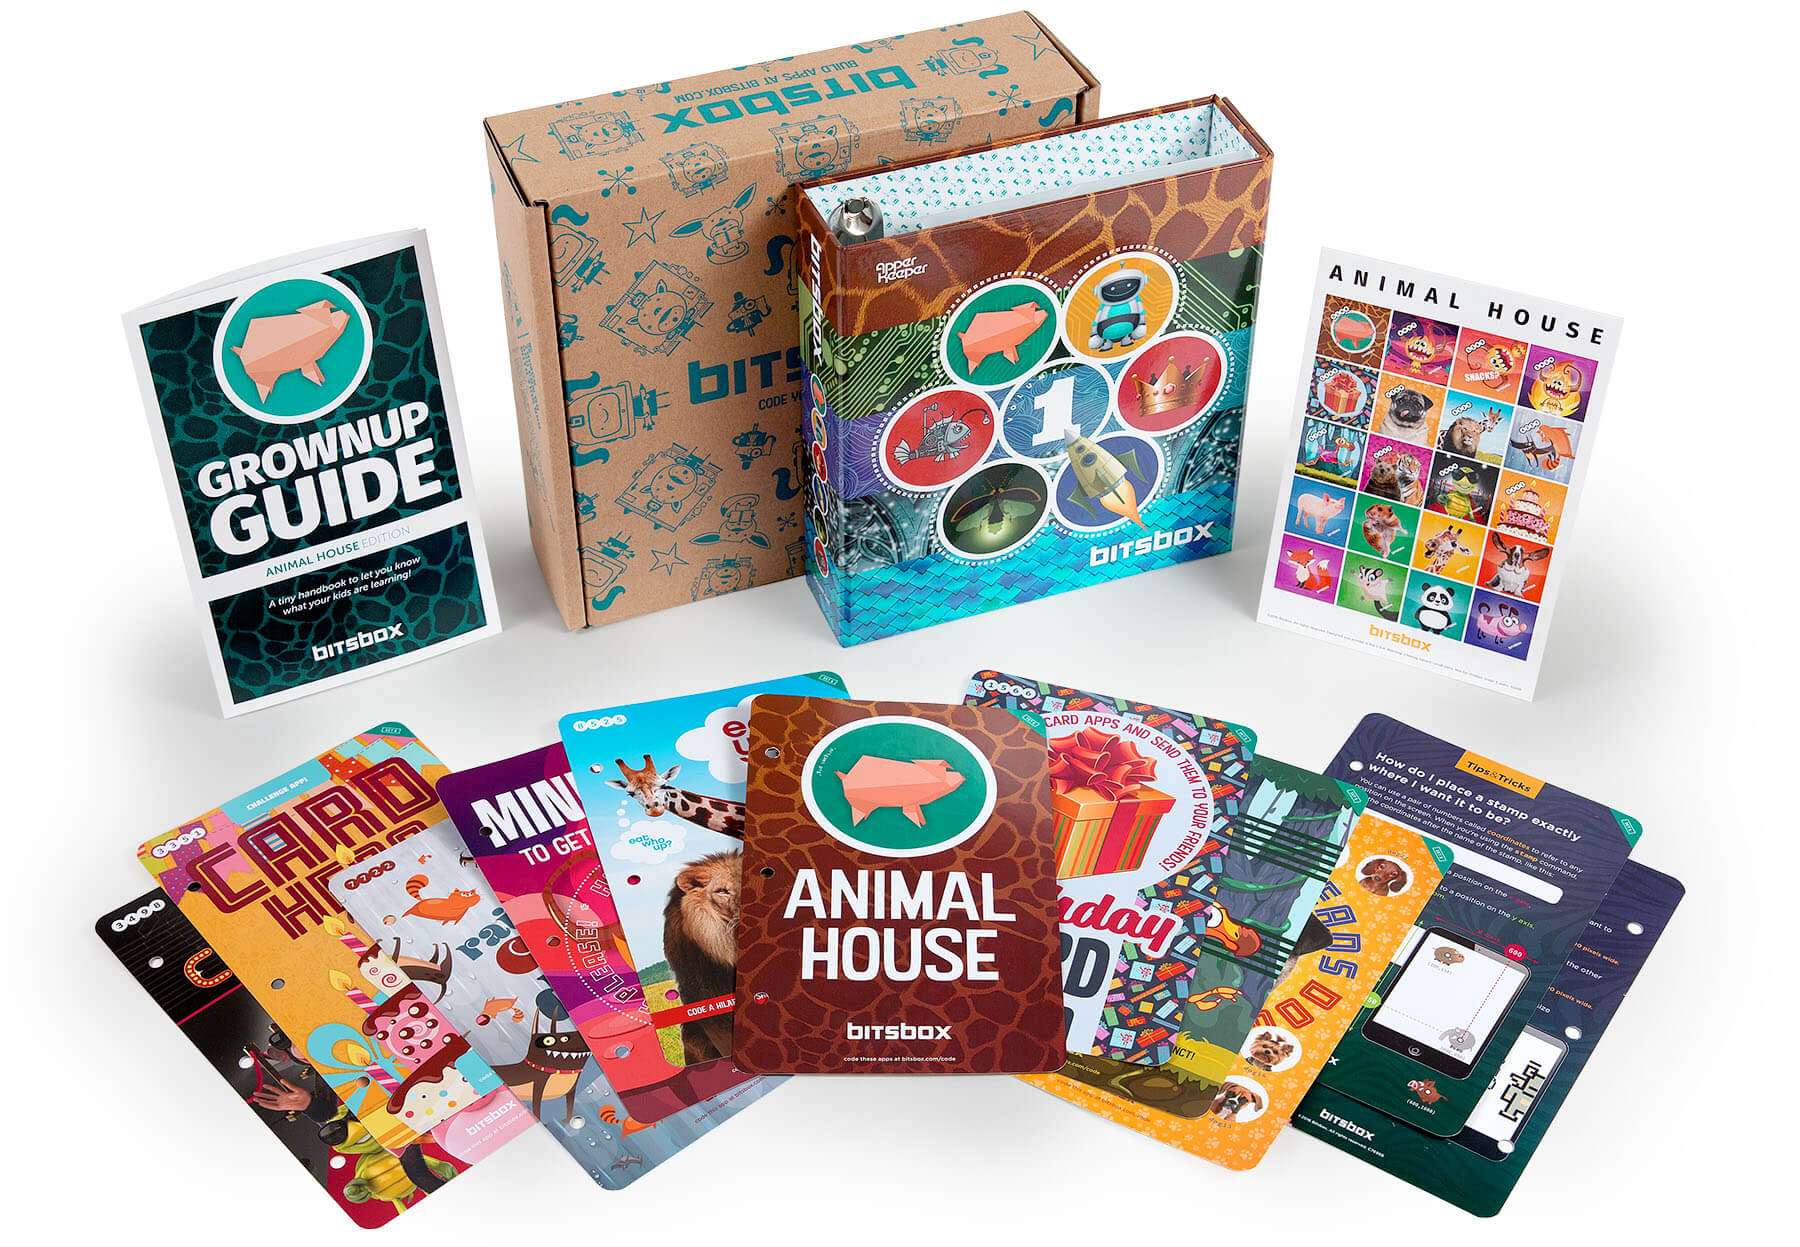 Bitsbox shown with a number of examples of themes that might come in this kids computer coding box.